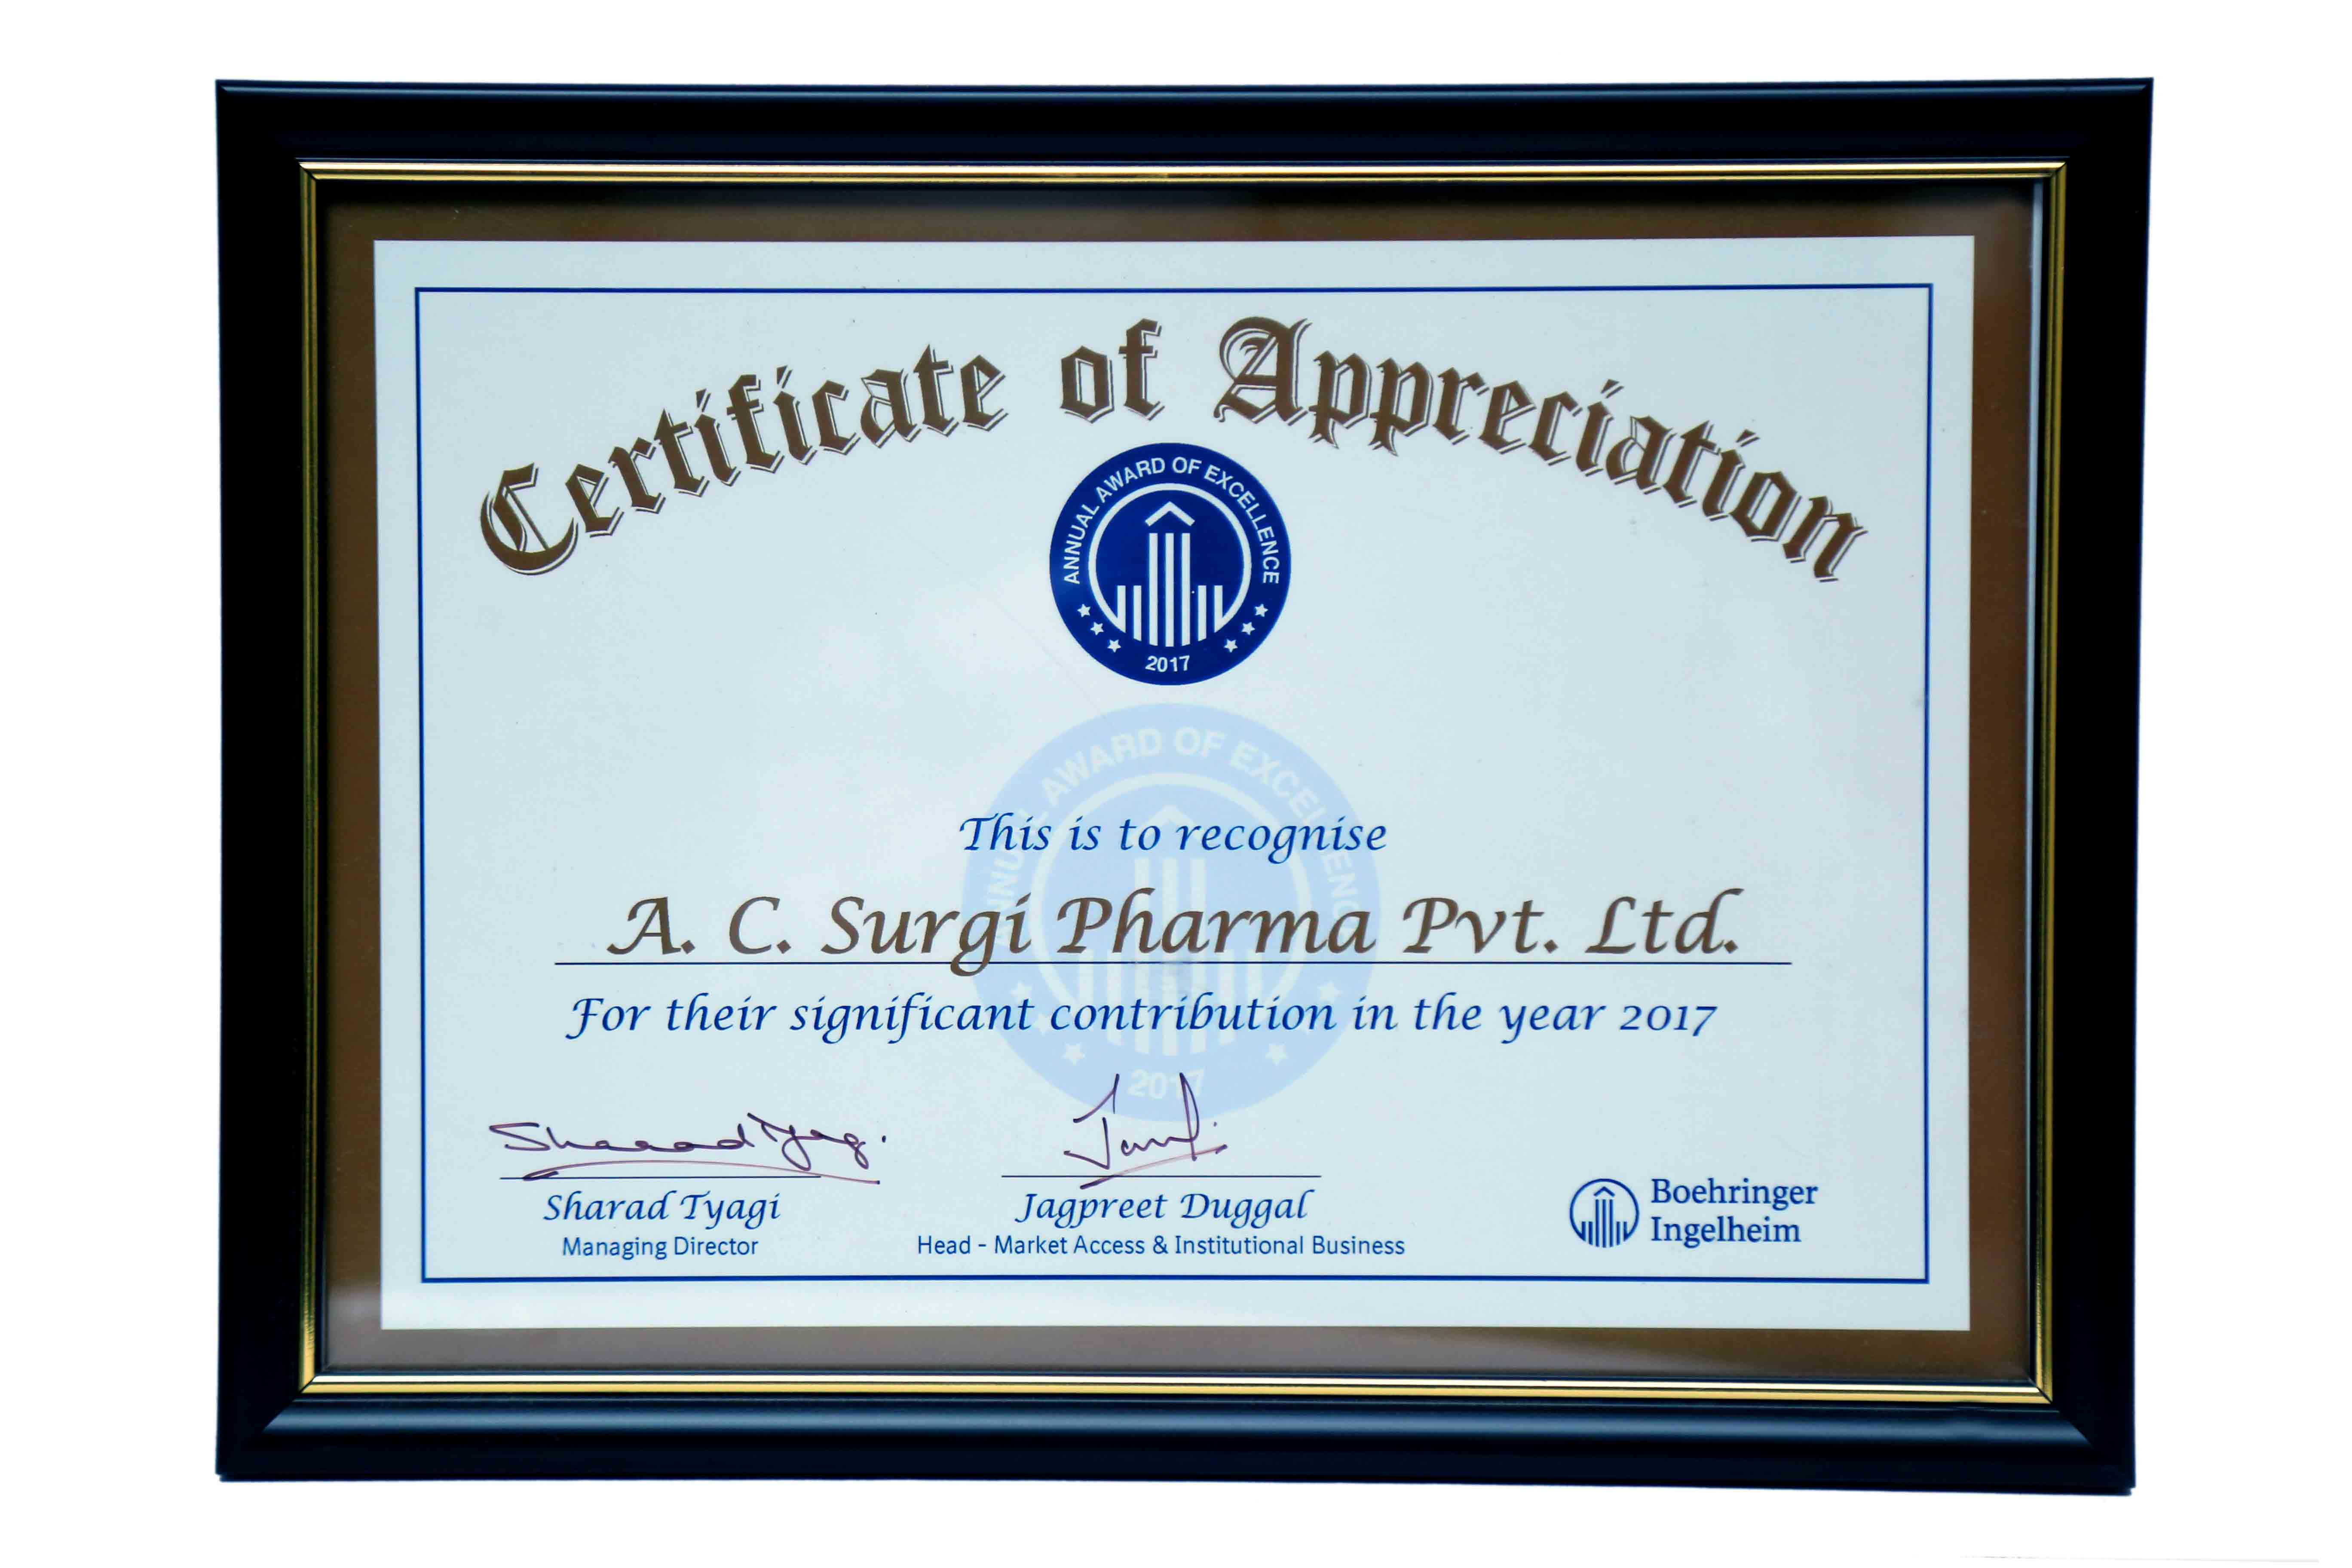 Certificate of Appreciation By Boehringer Ingelhiem